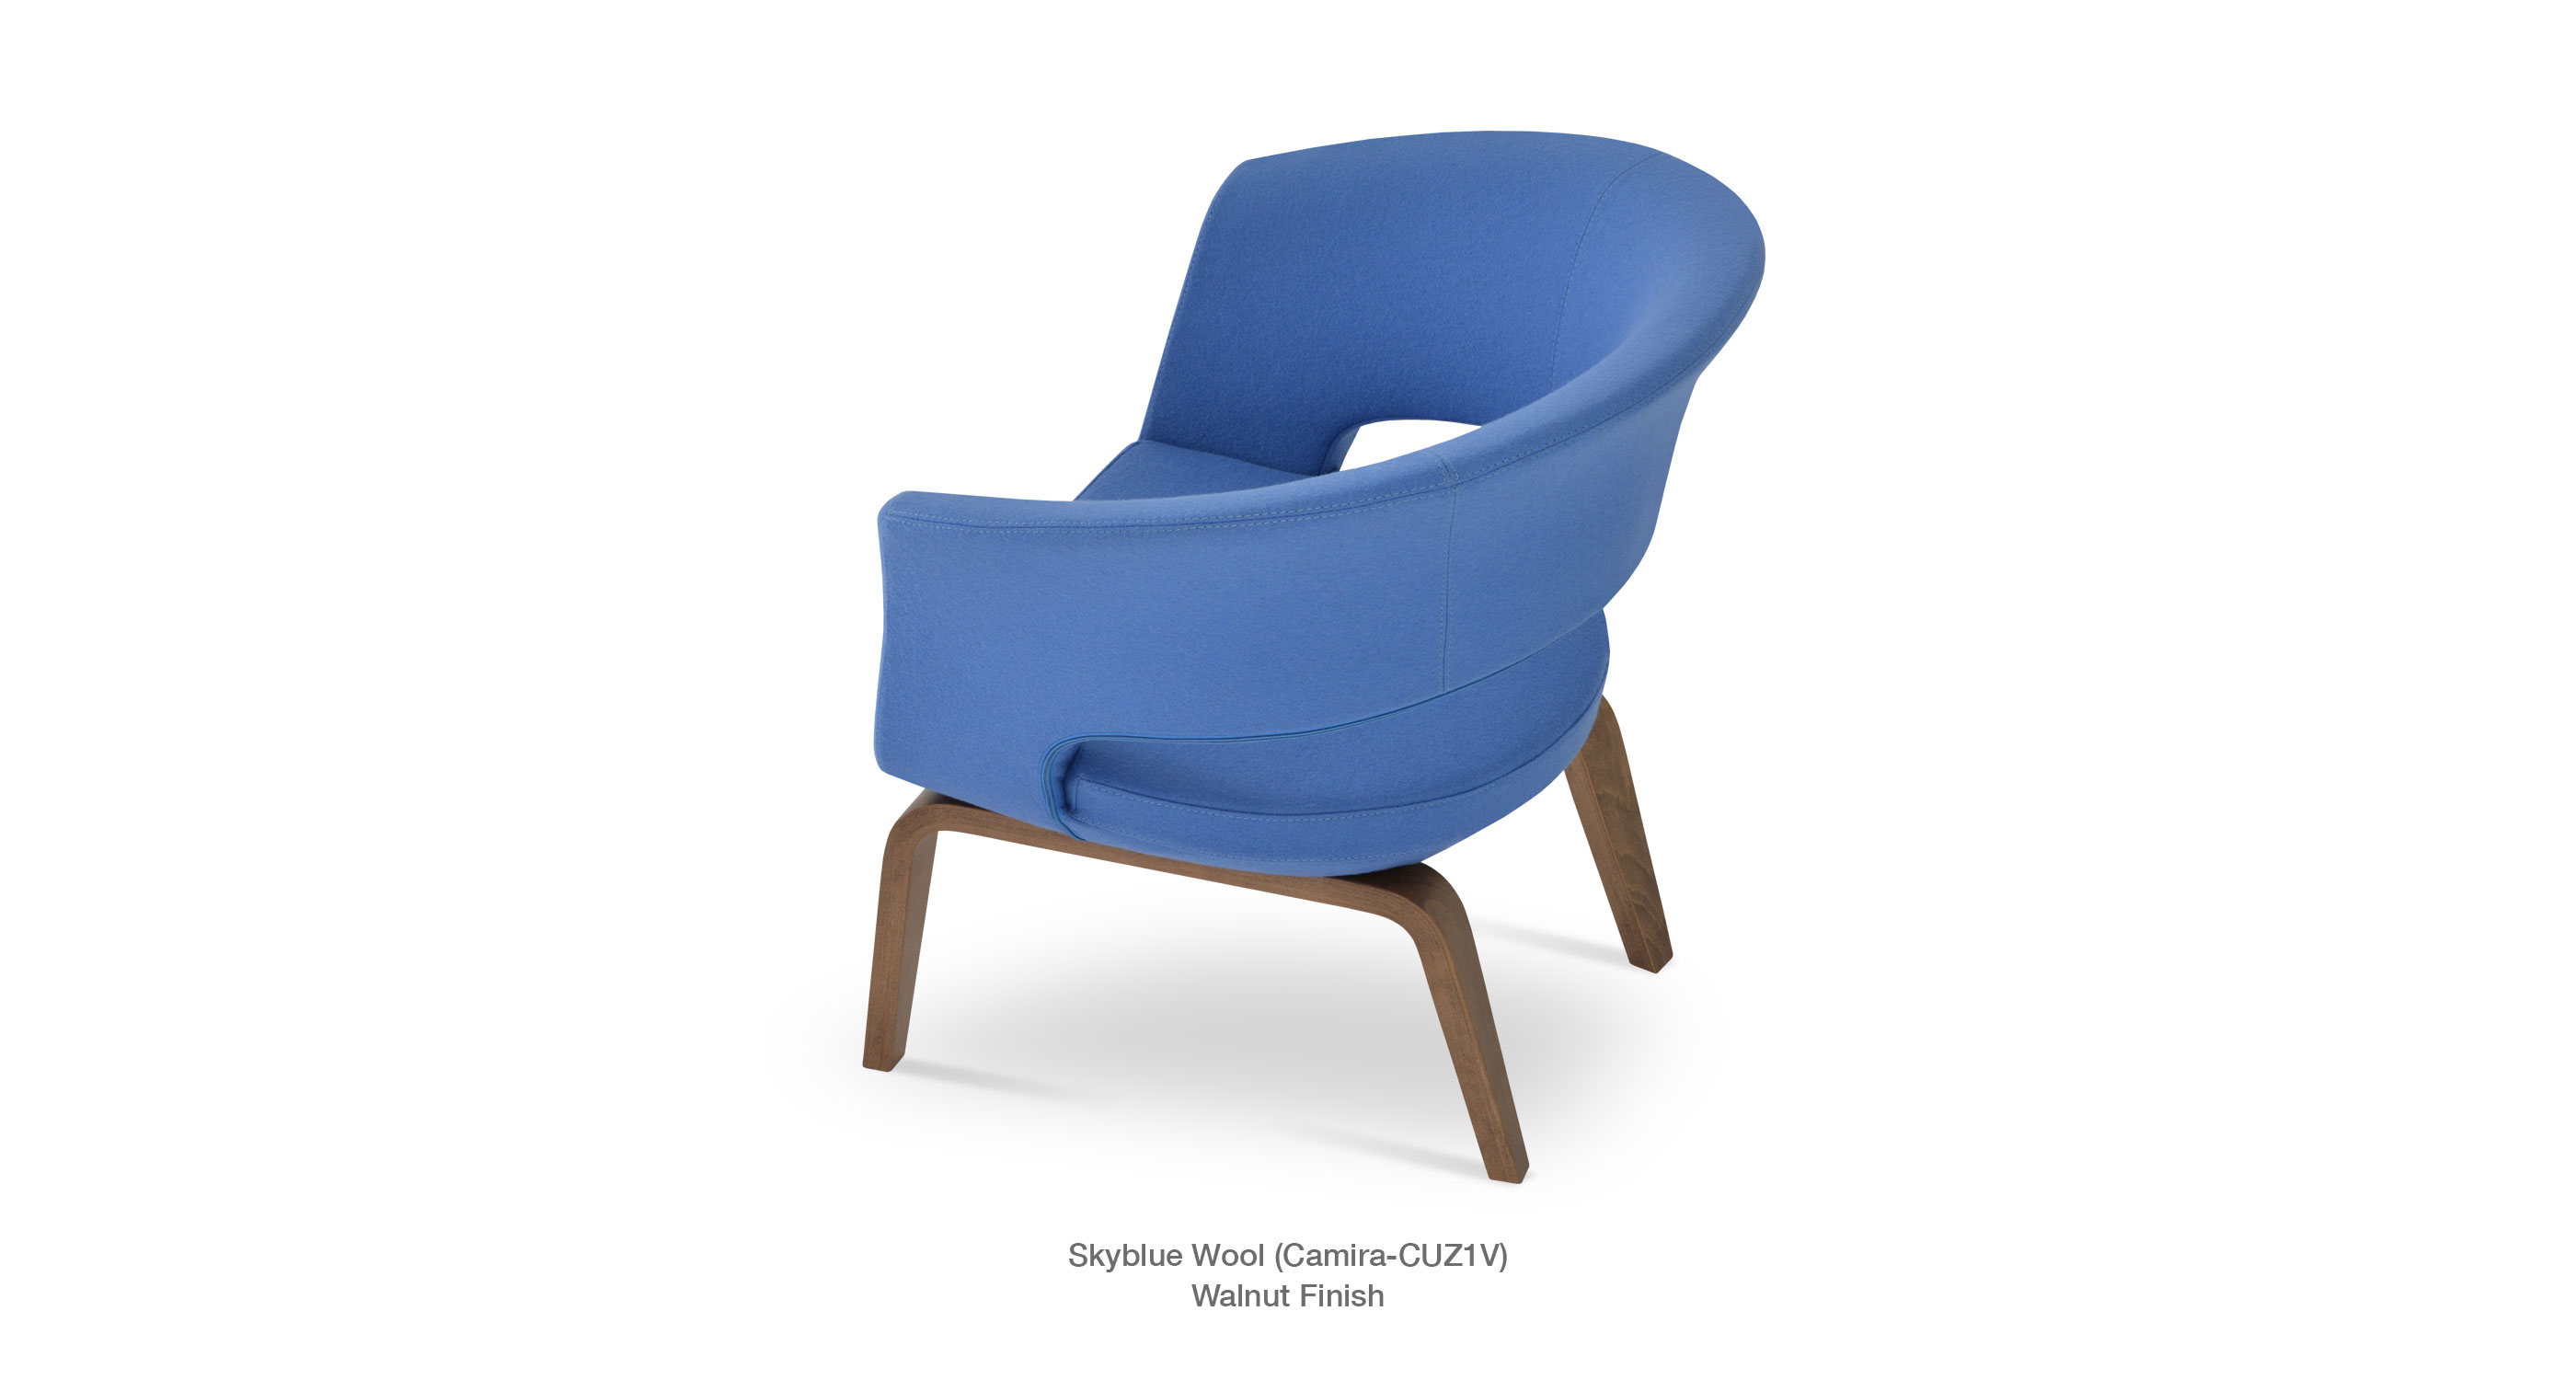 Ada Plywood Skyblue 2